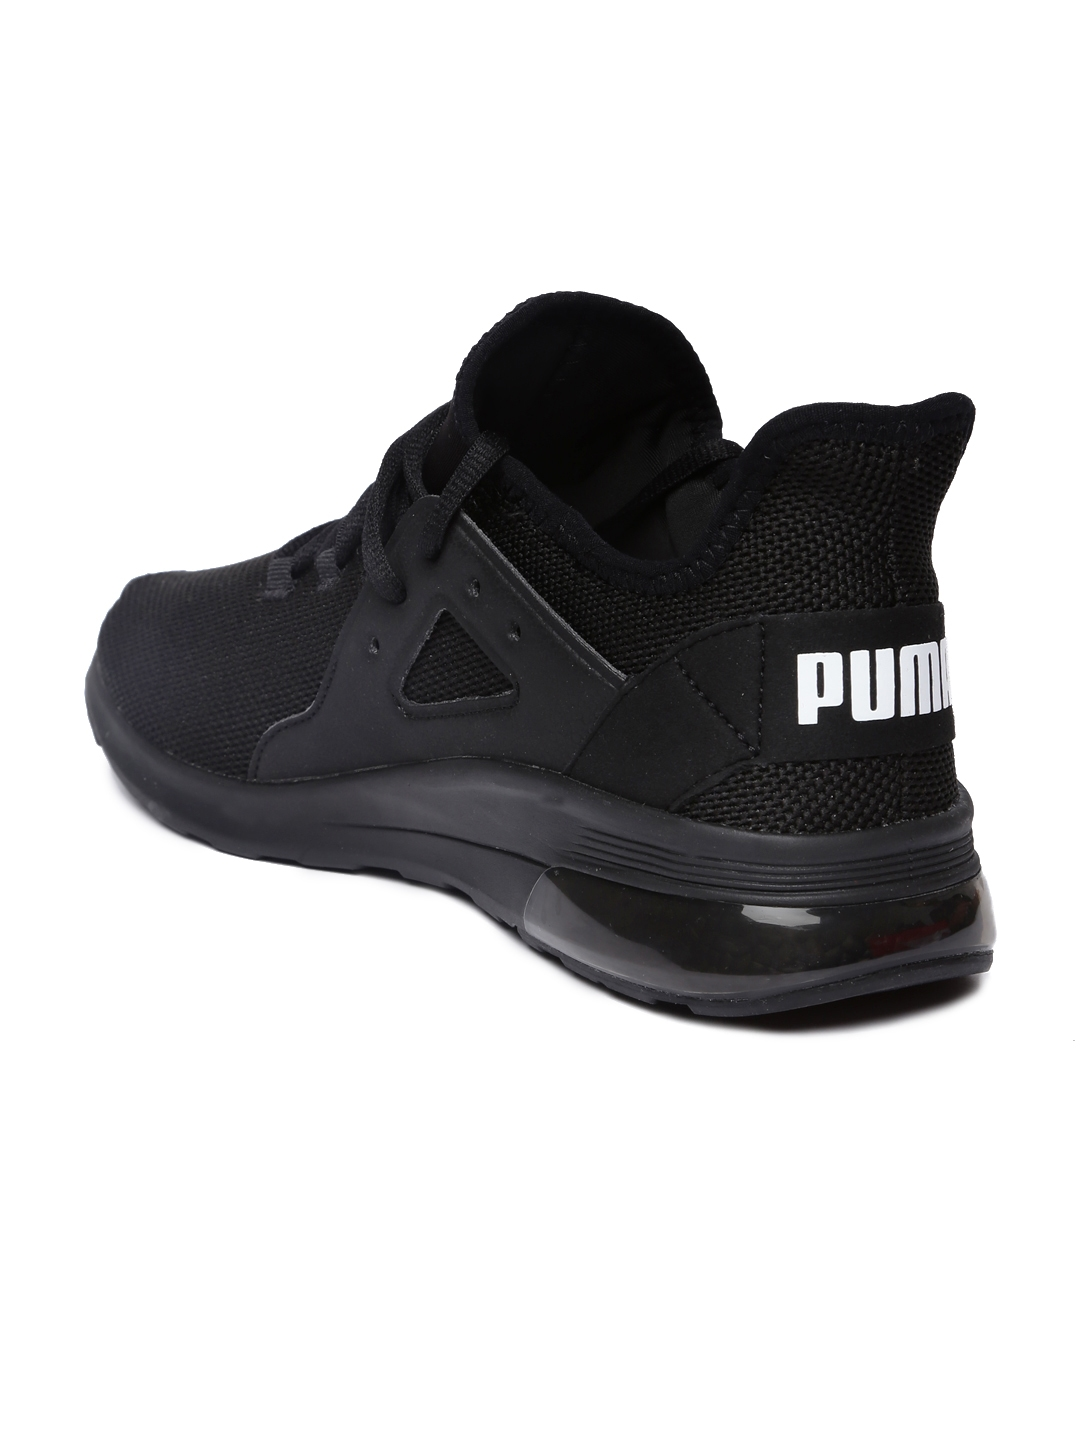 3078d9833029e0 Buy Puma Men Black Electron Street Sneakers - Casual Shoes for Men ...